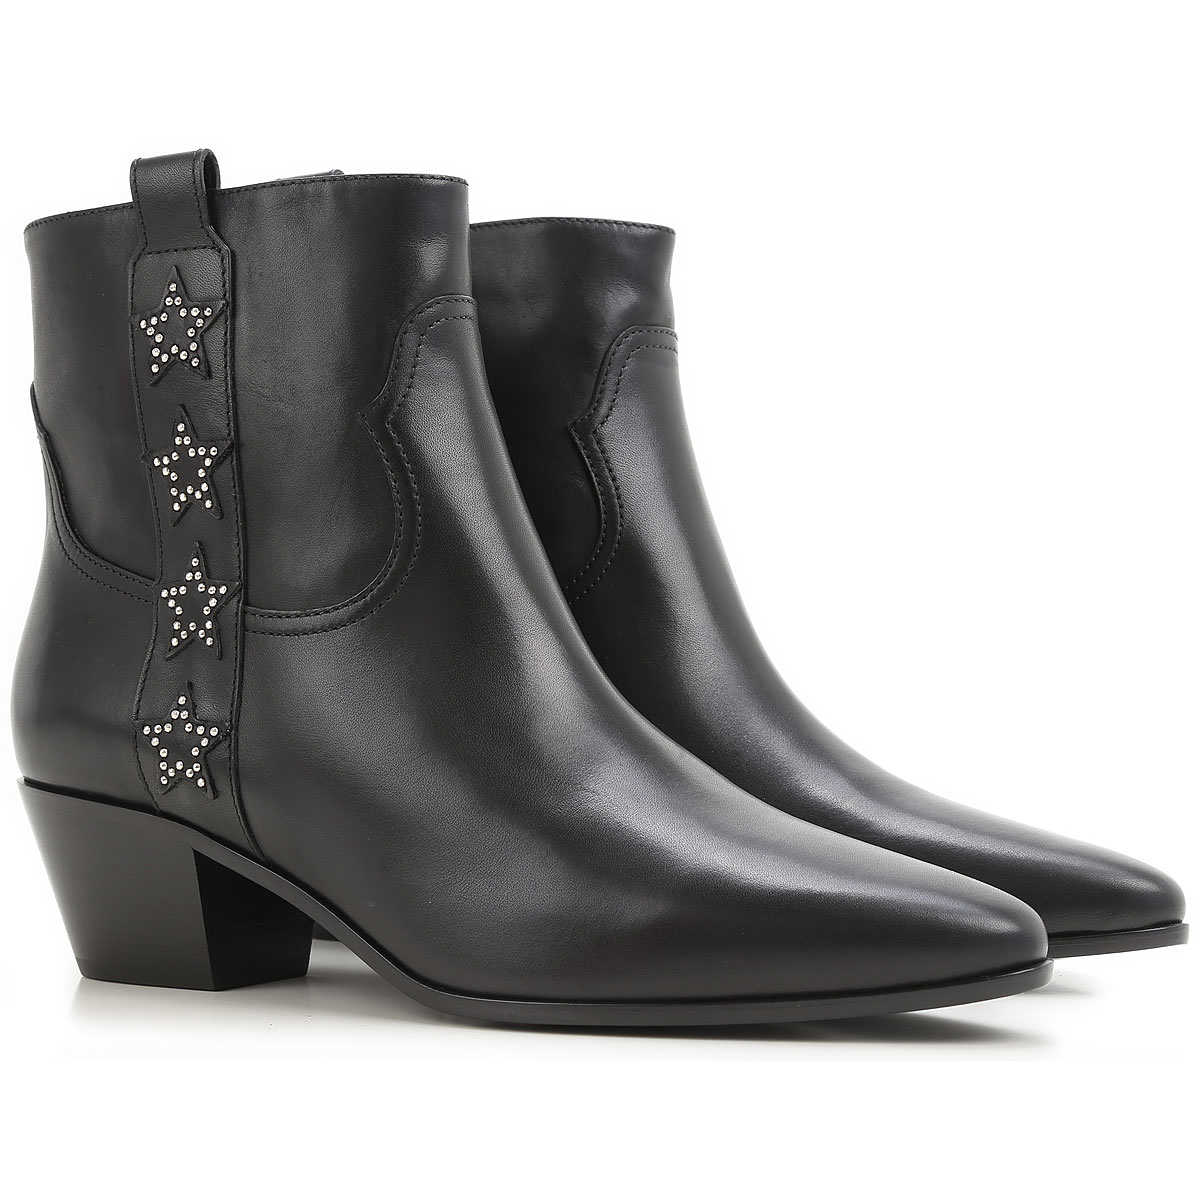 Yves Saint Laurent Boots for Women Booties On Sale in Outlet DK - GOOFASH - Womens BOOTS